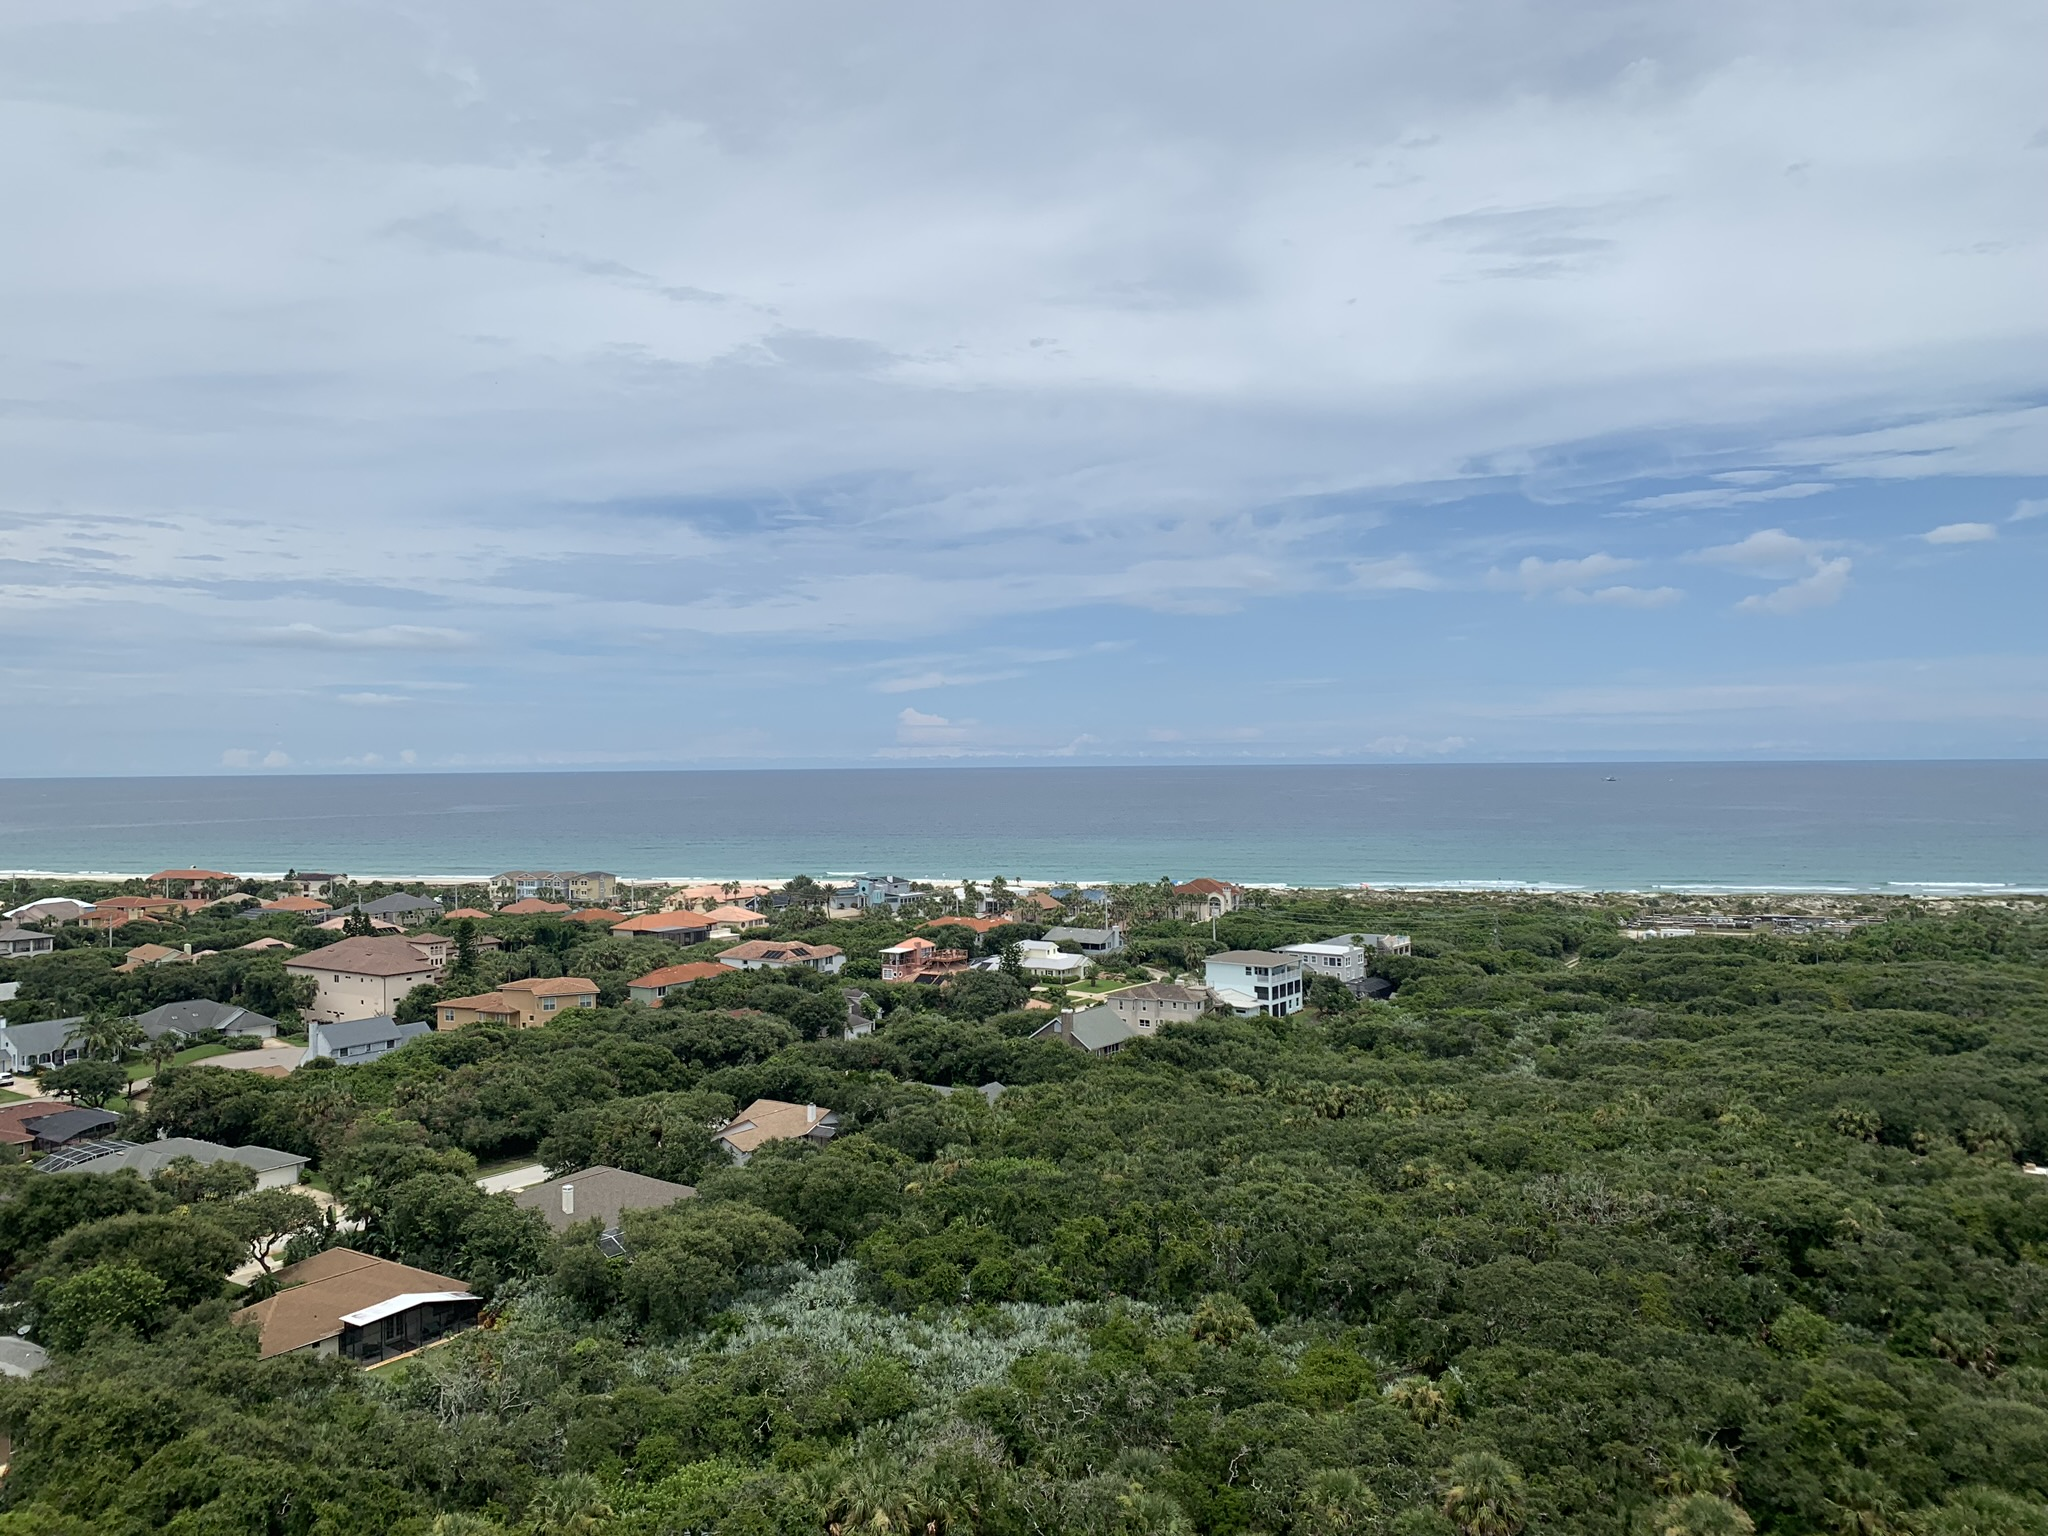 the view from the top of Florida's tallest lighthouse